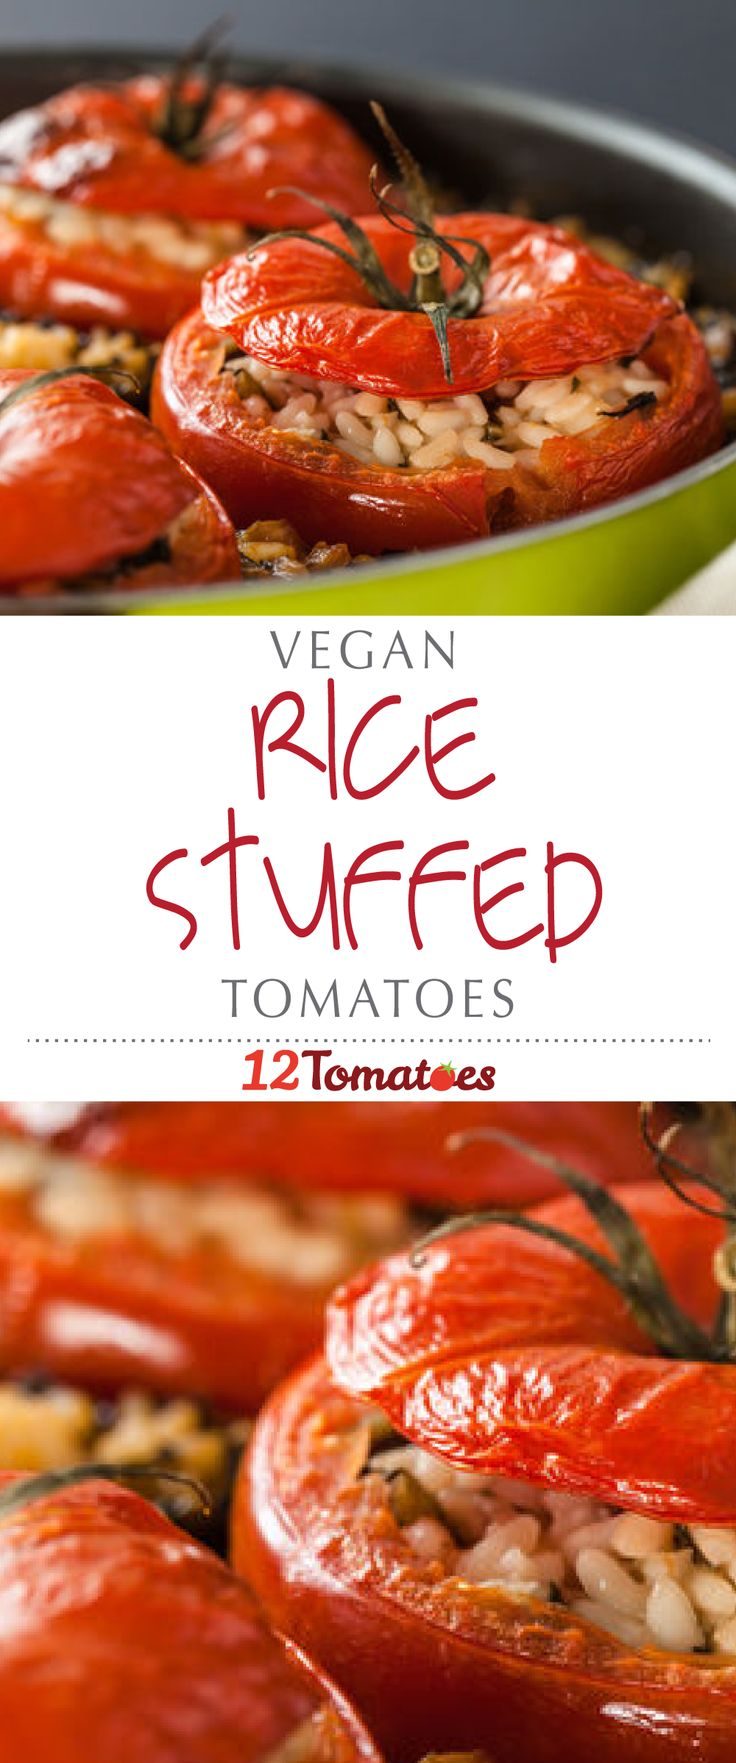 Vegan Rice Stuffed Tomatoes | In Greece and Italy, rice-stuffed tomatoes are a common dish — and we've made a vegan variation that's sure to please herbivores and omnivores alike.